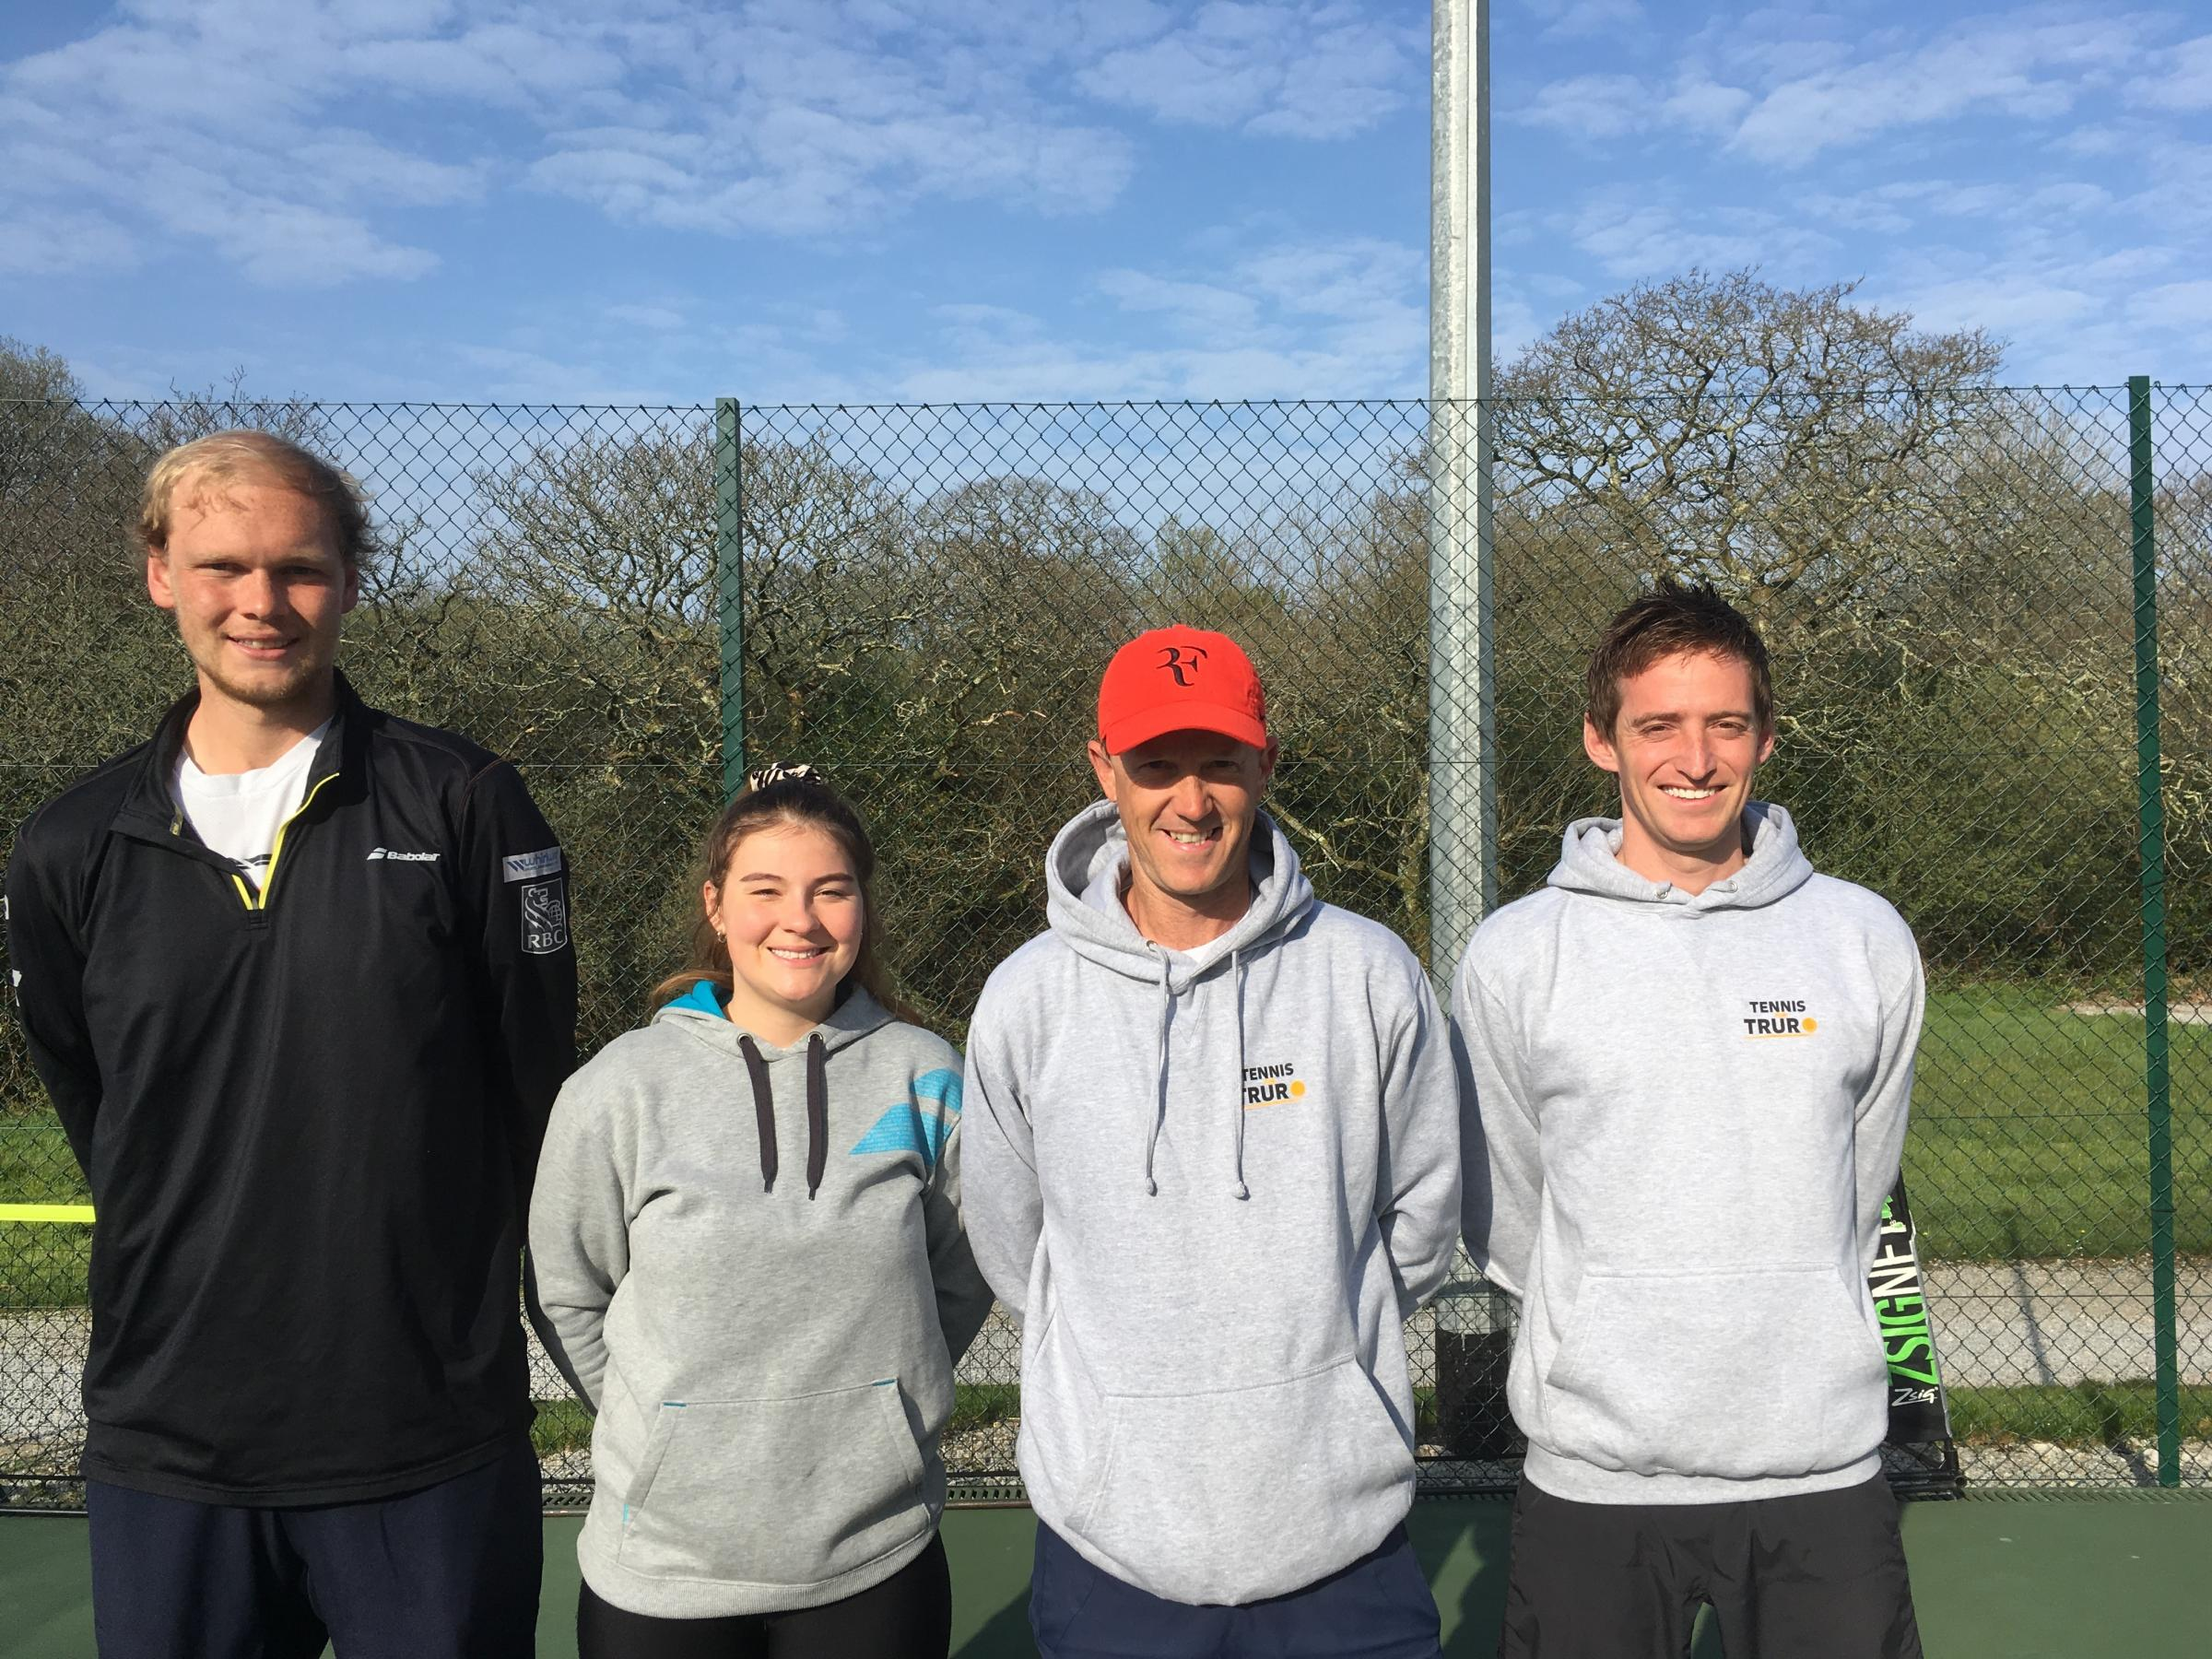 The Tennis For Free team (L-R): Nick Peters, Anya Gough, Ryan Fern and Ed Richards